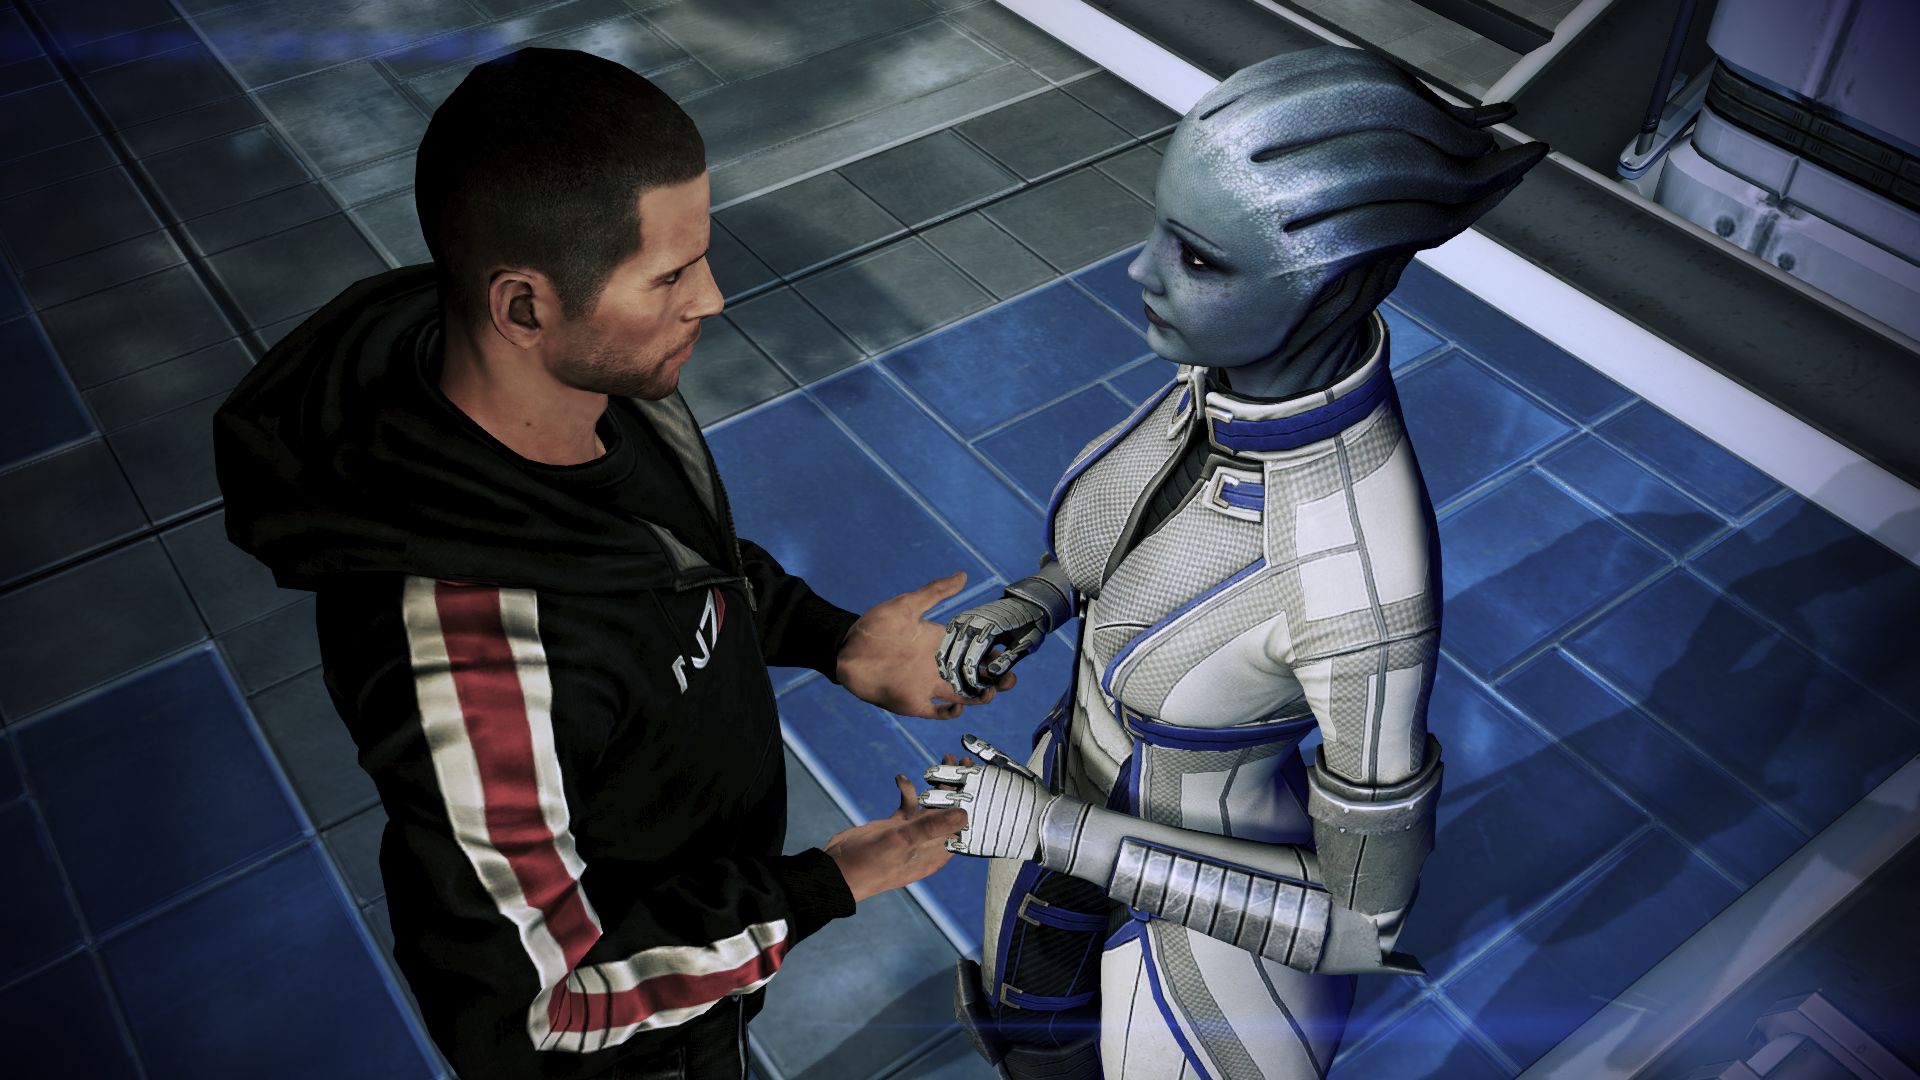 Mass Effect Shepard and Liara 3 by vatherlandMass Effect 3 Liara And Shepard